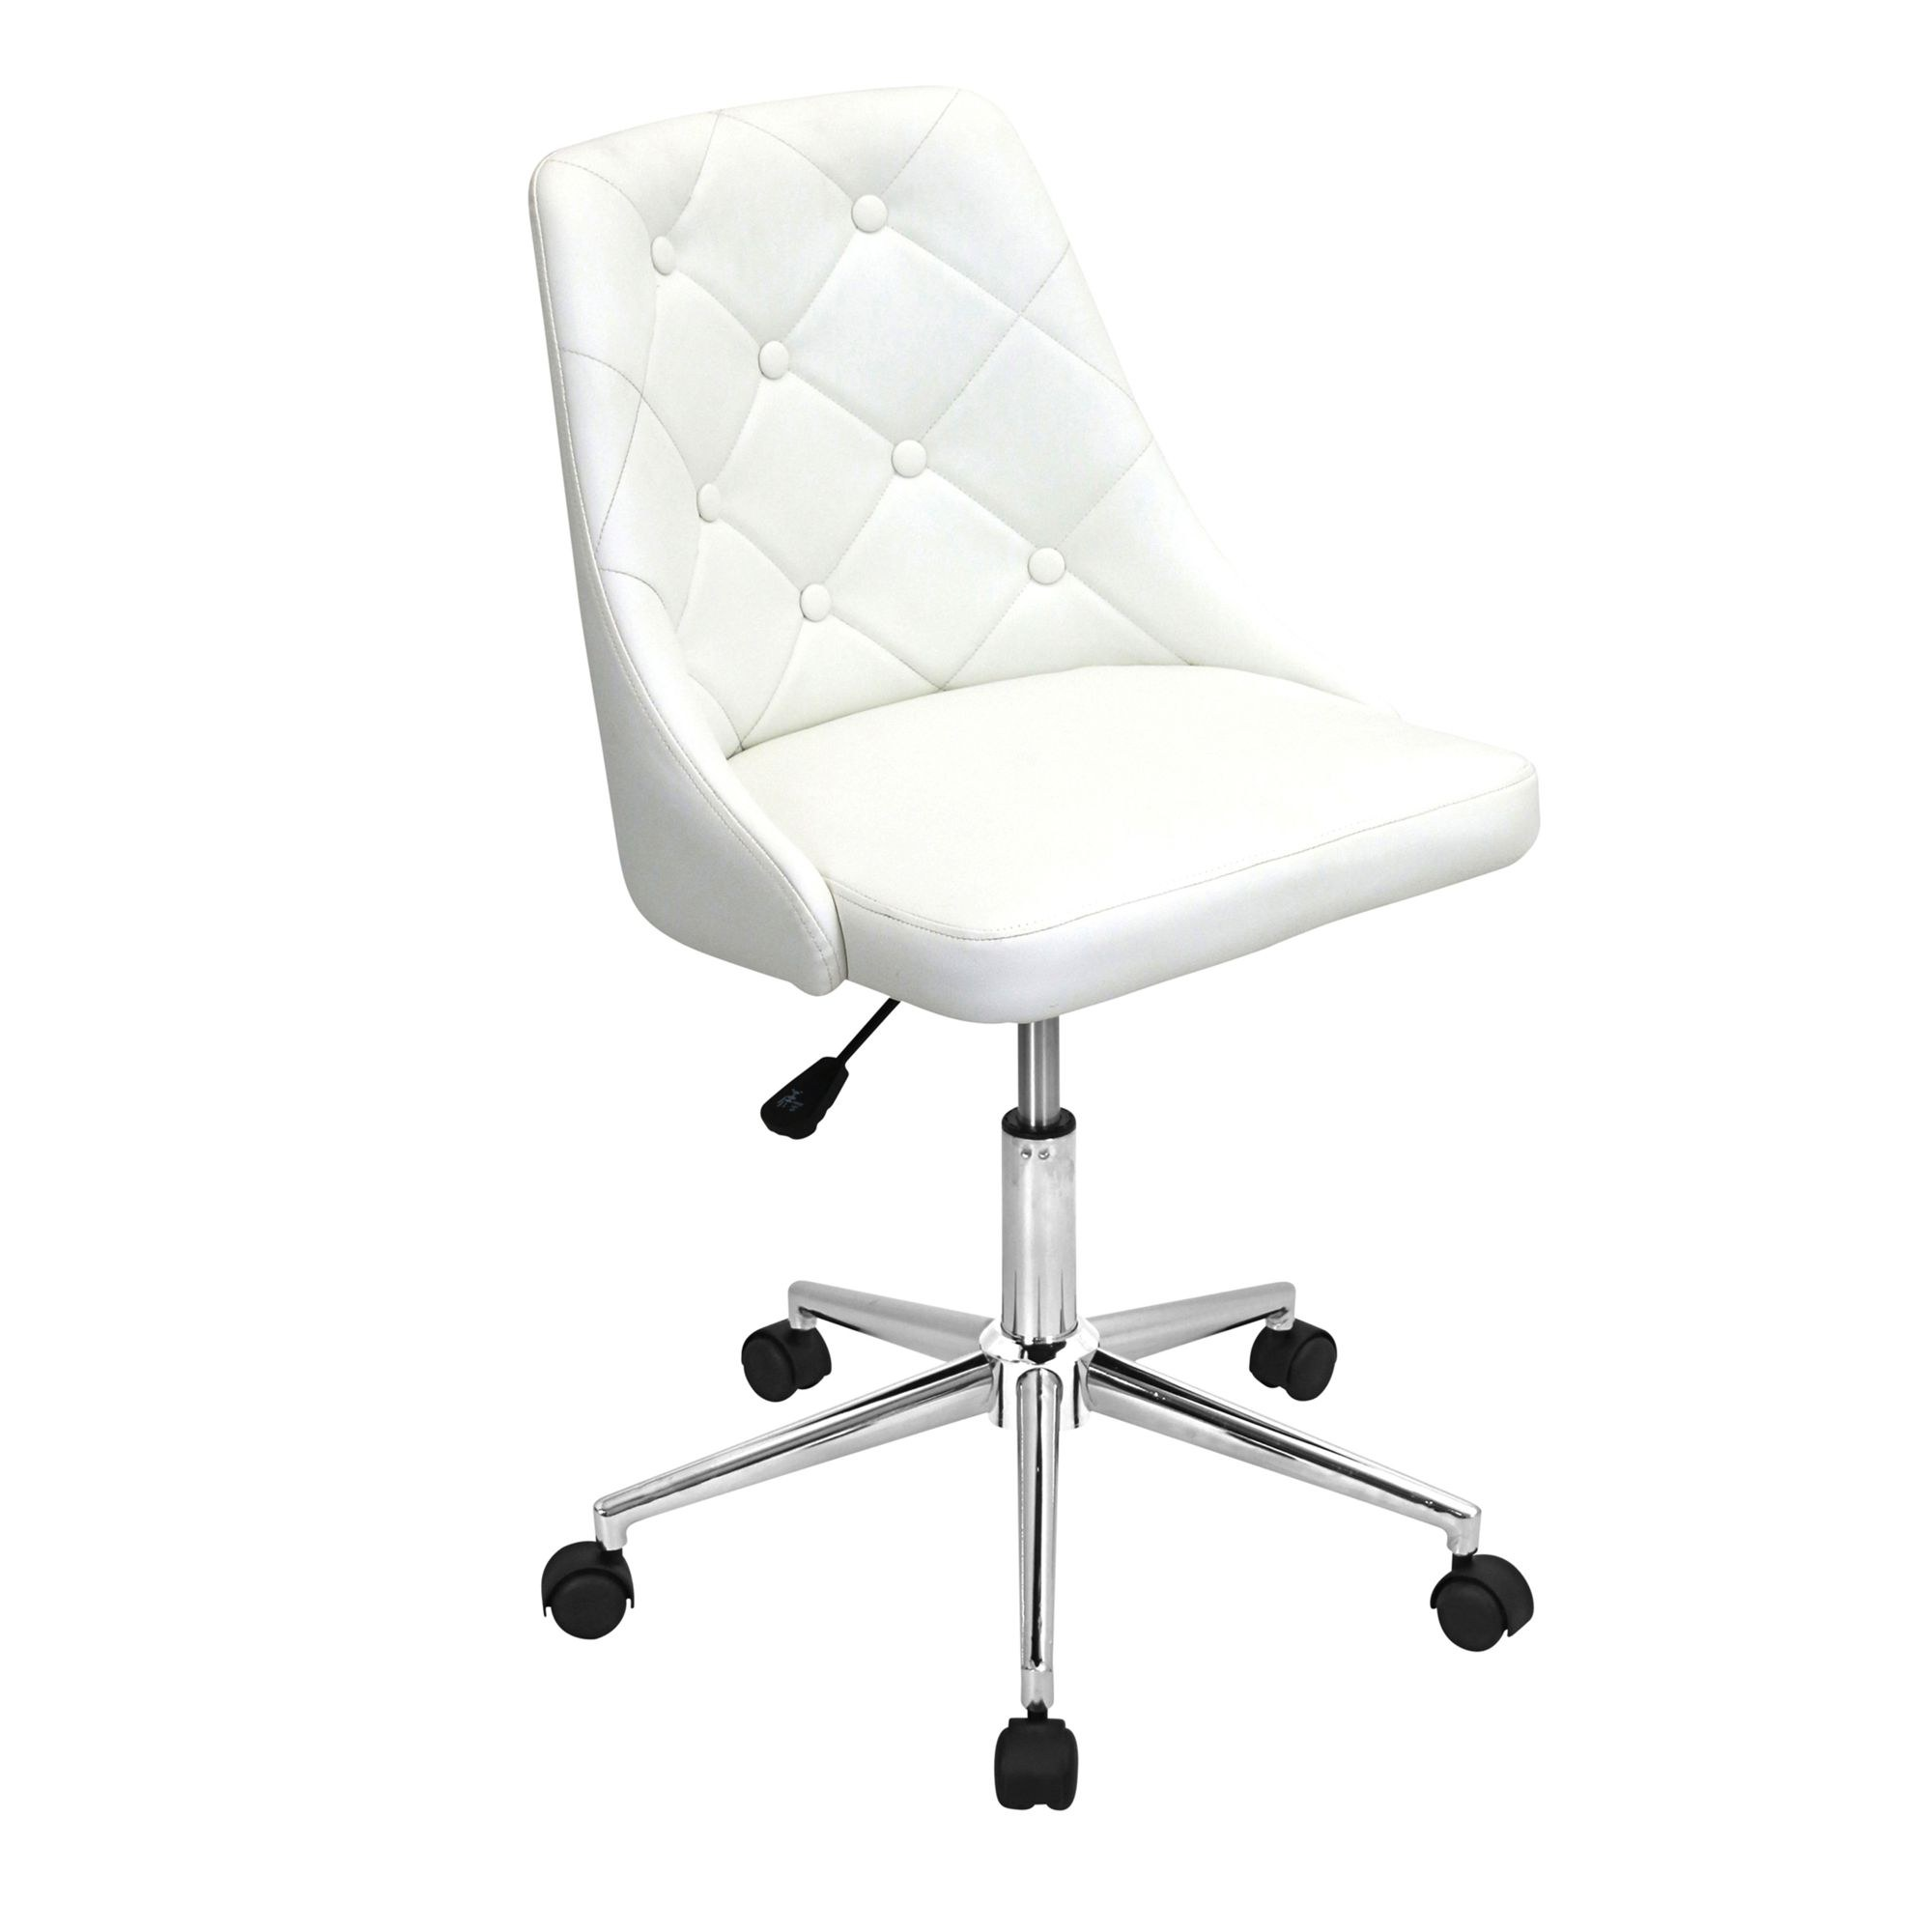 Eggshell Chair Marche Office Chair In Eggshell Off White By Lumisource